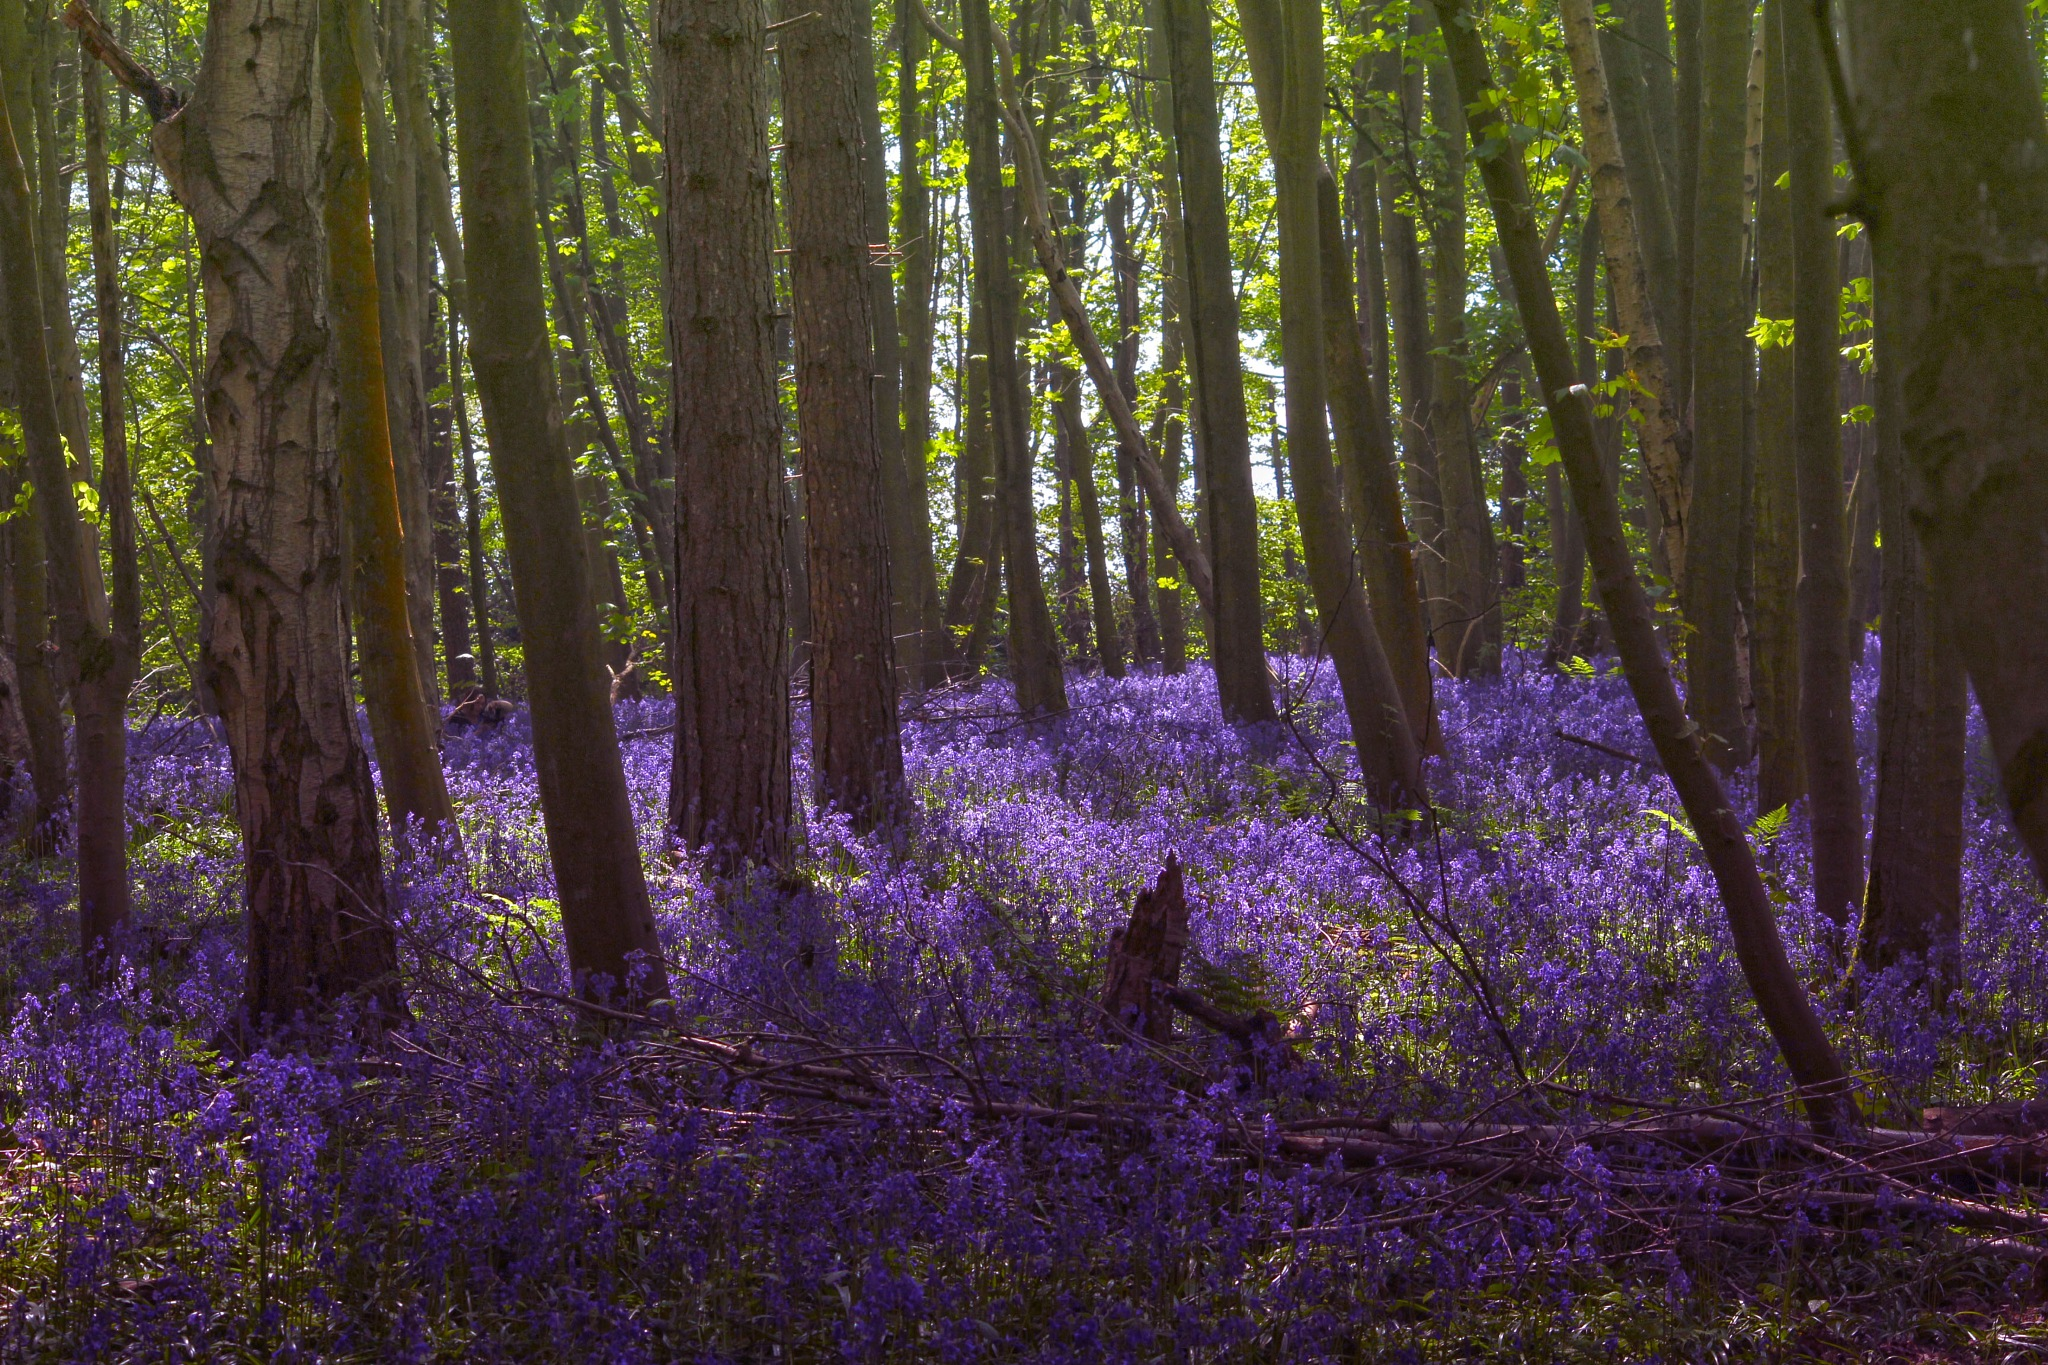 Looking at a Carpet of Purple Beauty by Mark Pemberton